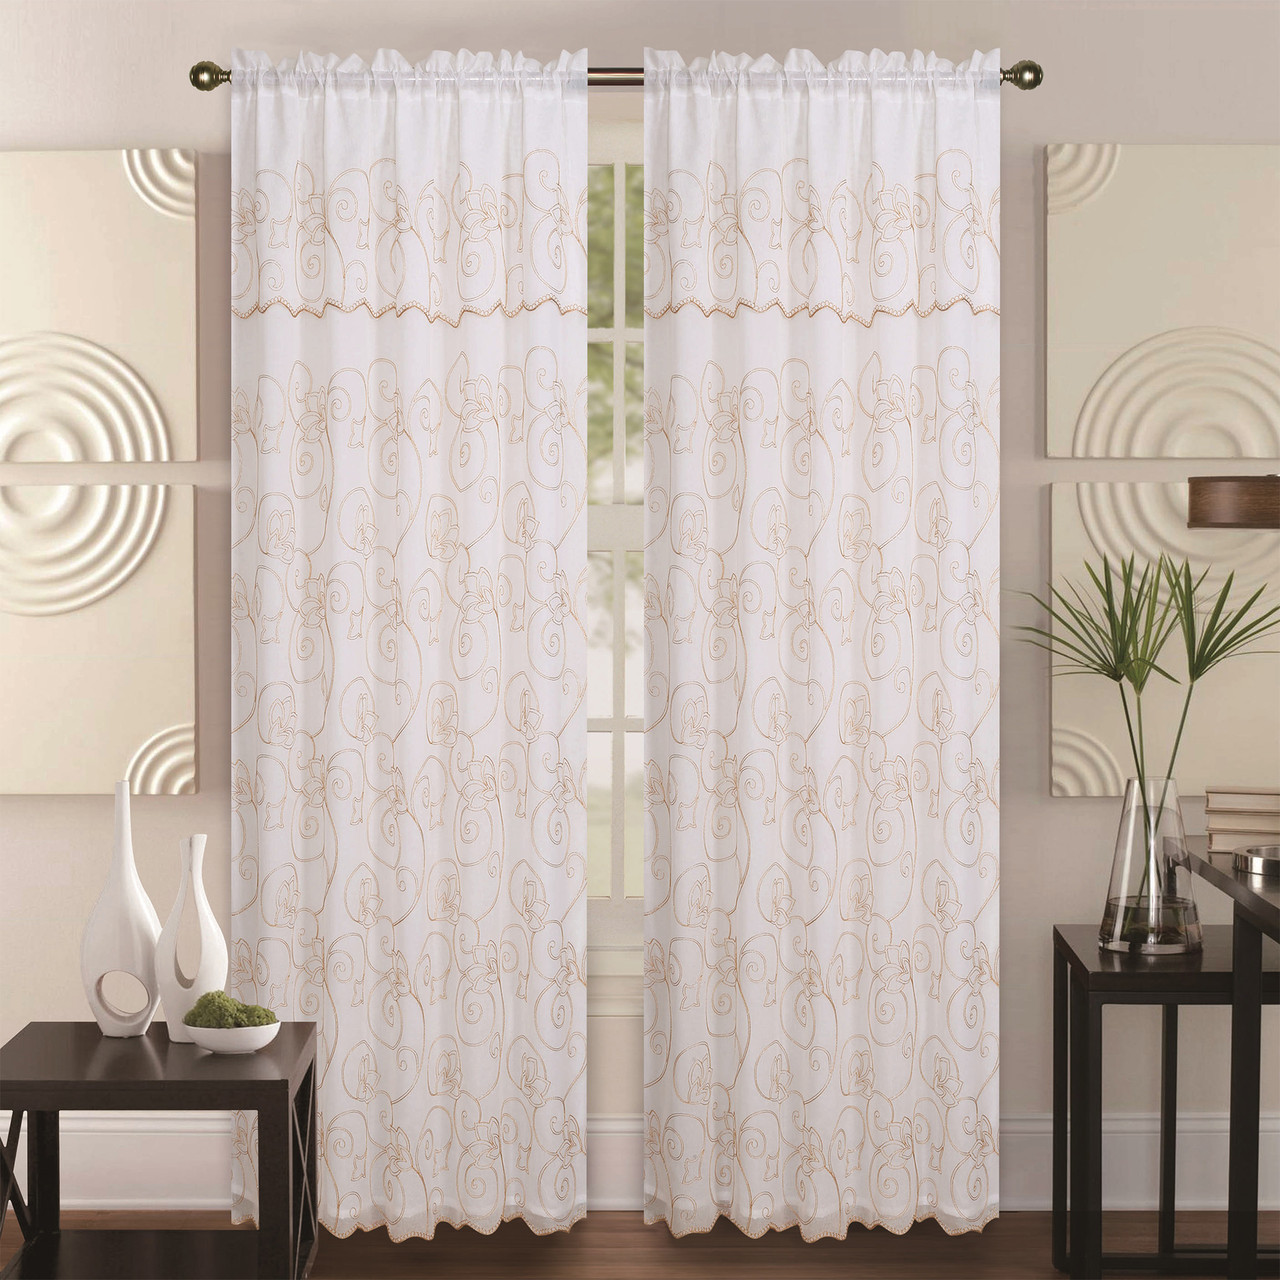 shopbedding com tambour swiss curtain and valance swag embroidered natural valances sheer